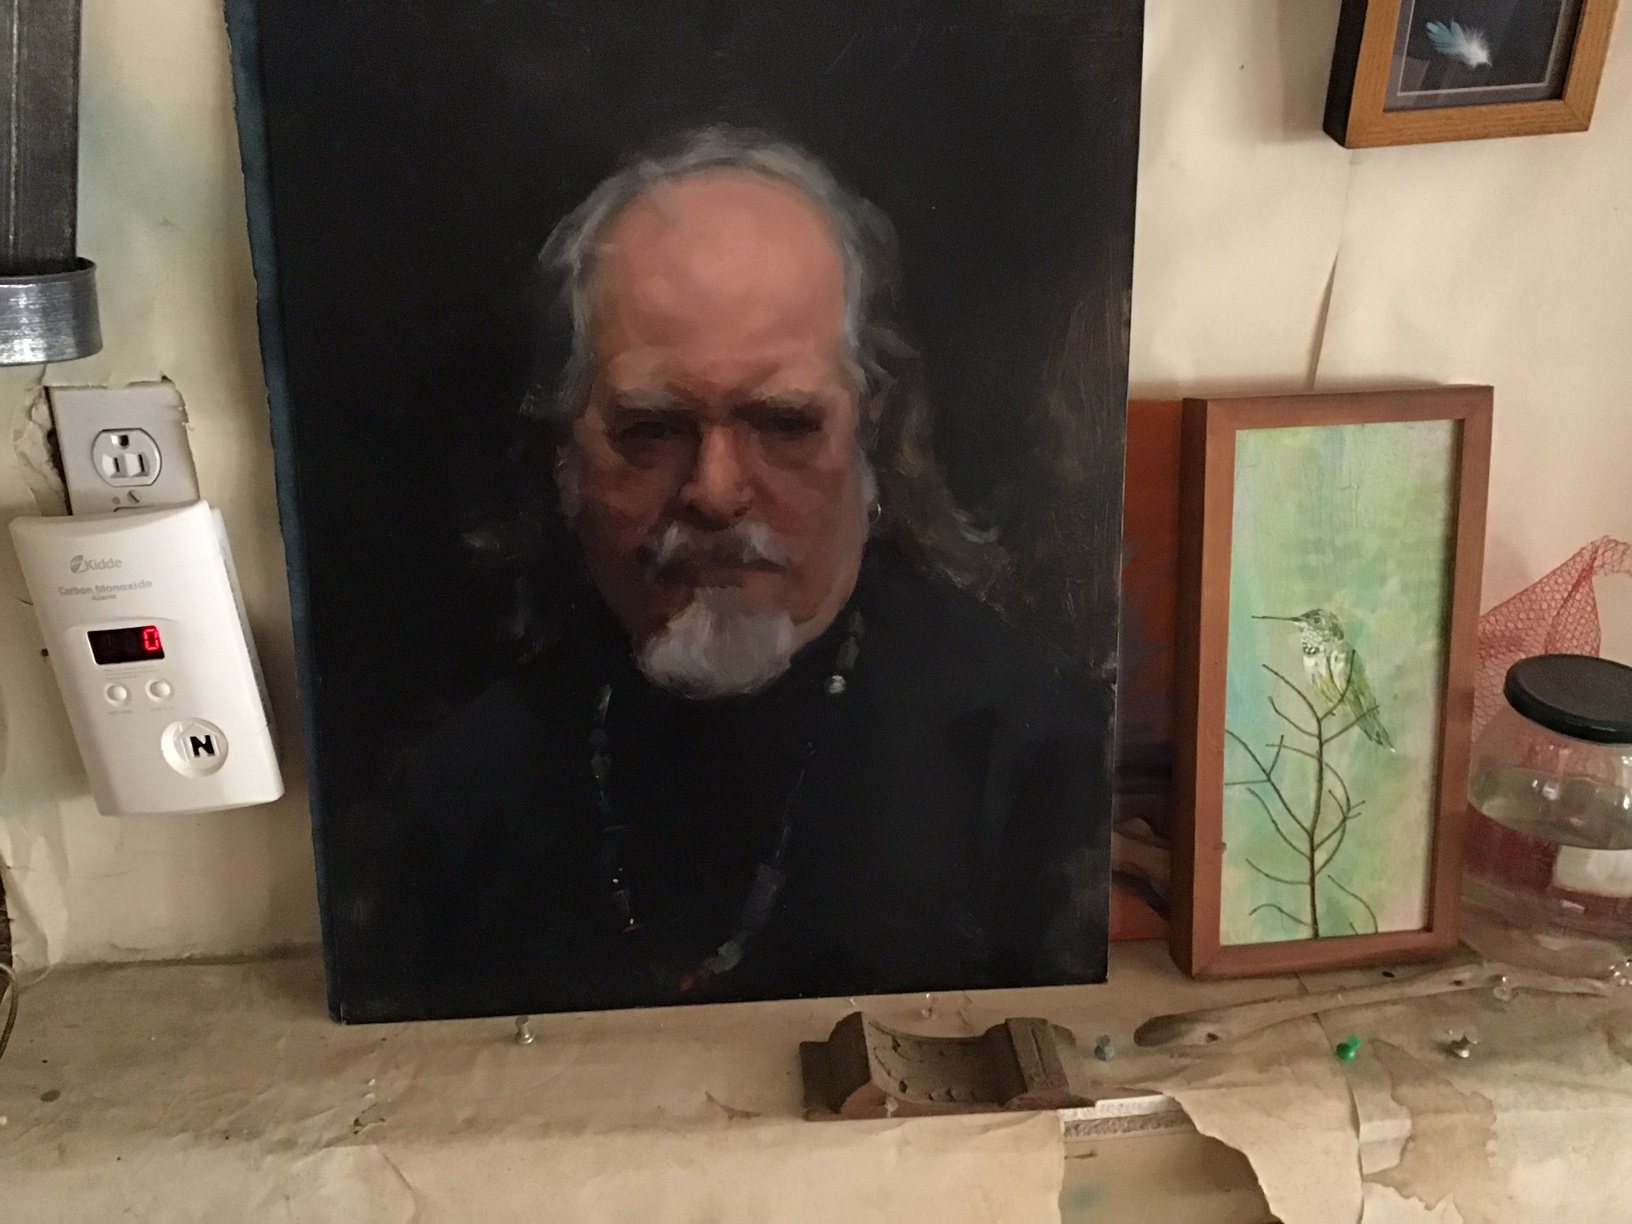 [Juan Ramirez painted this portrait of Rick]